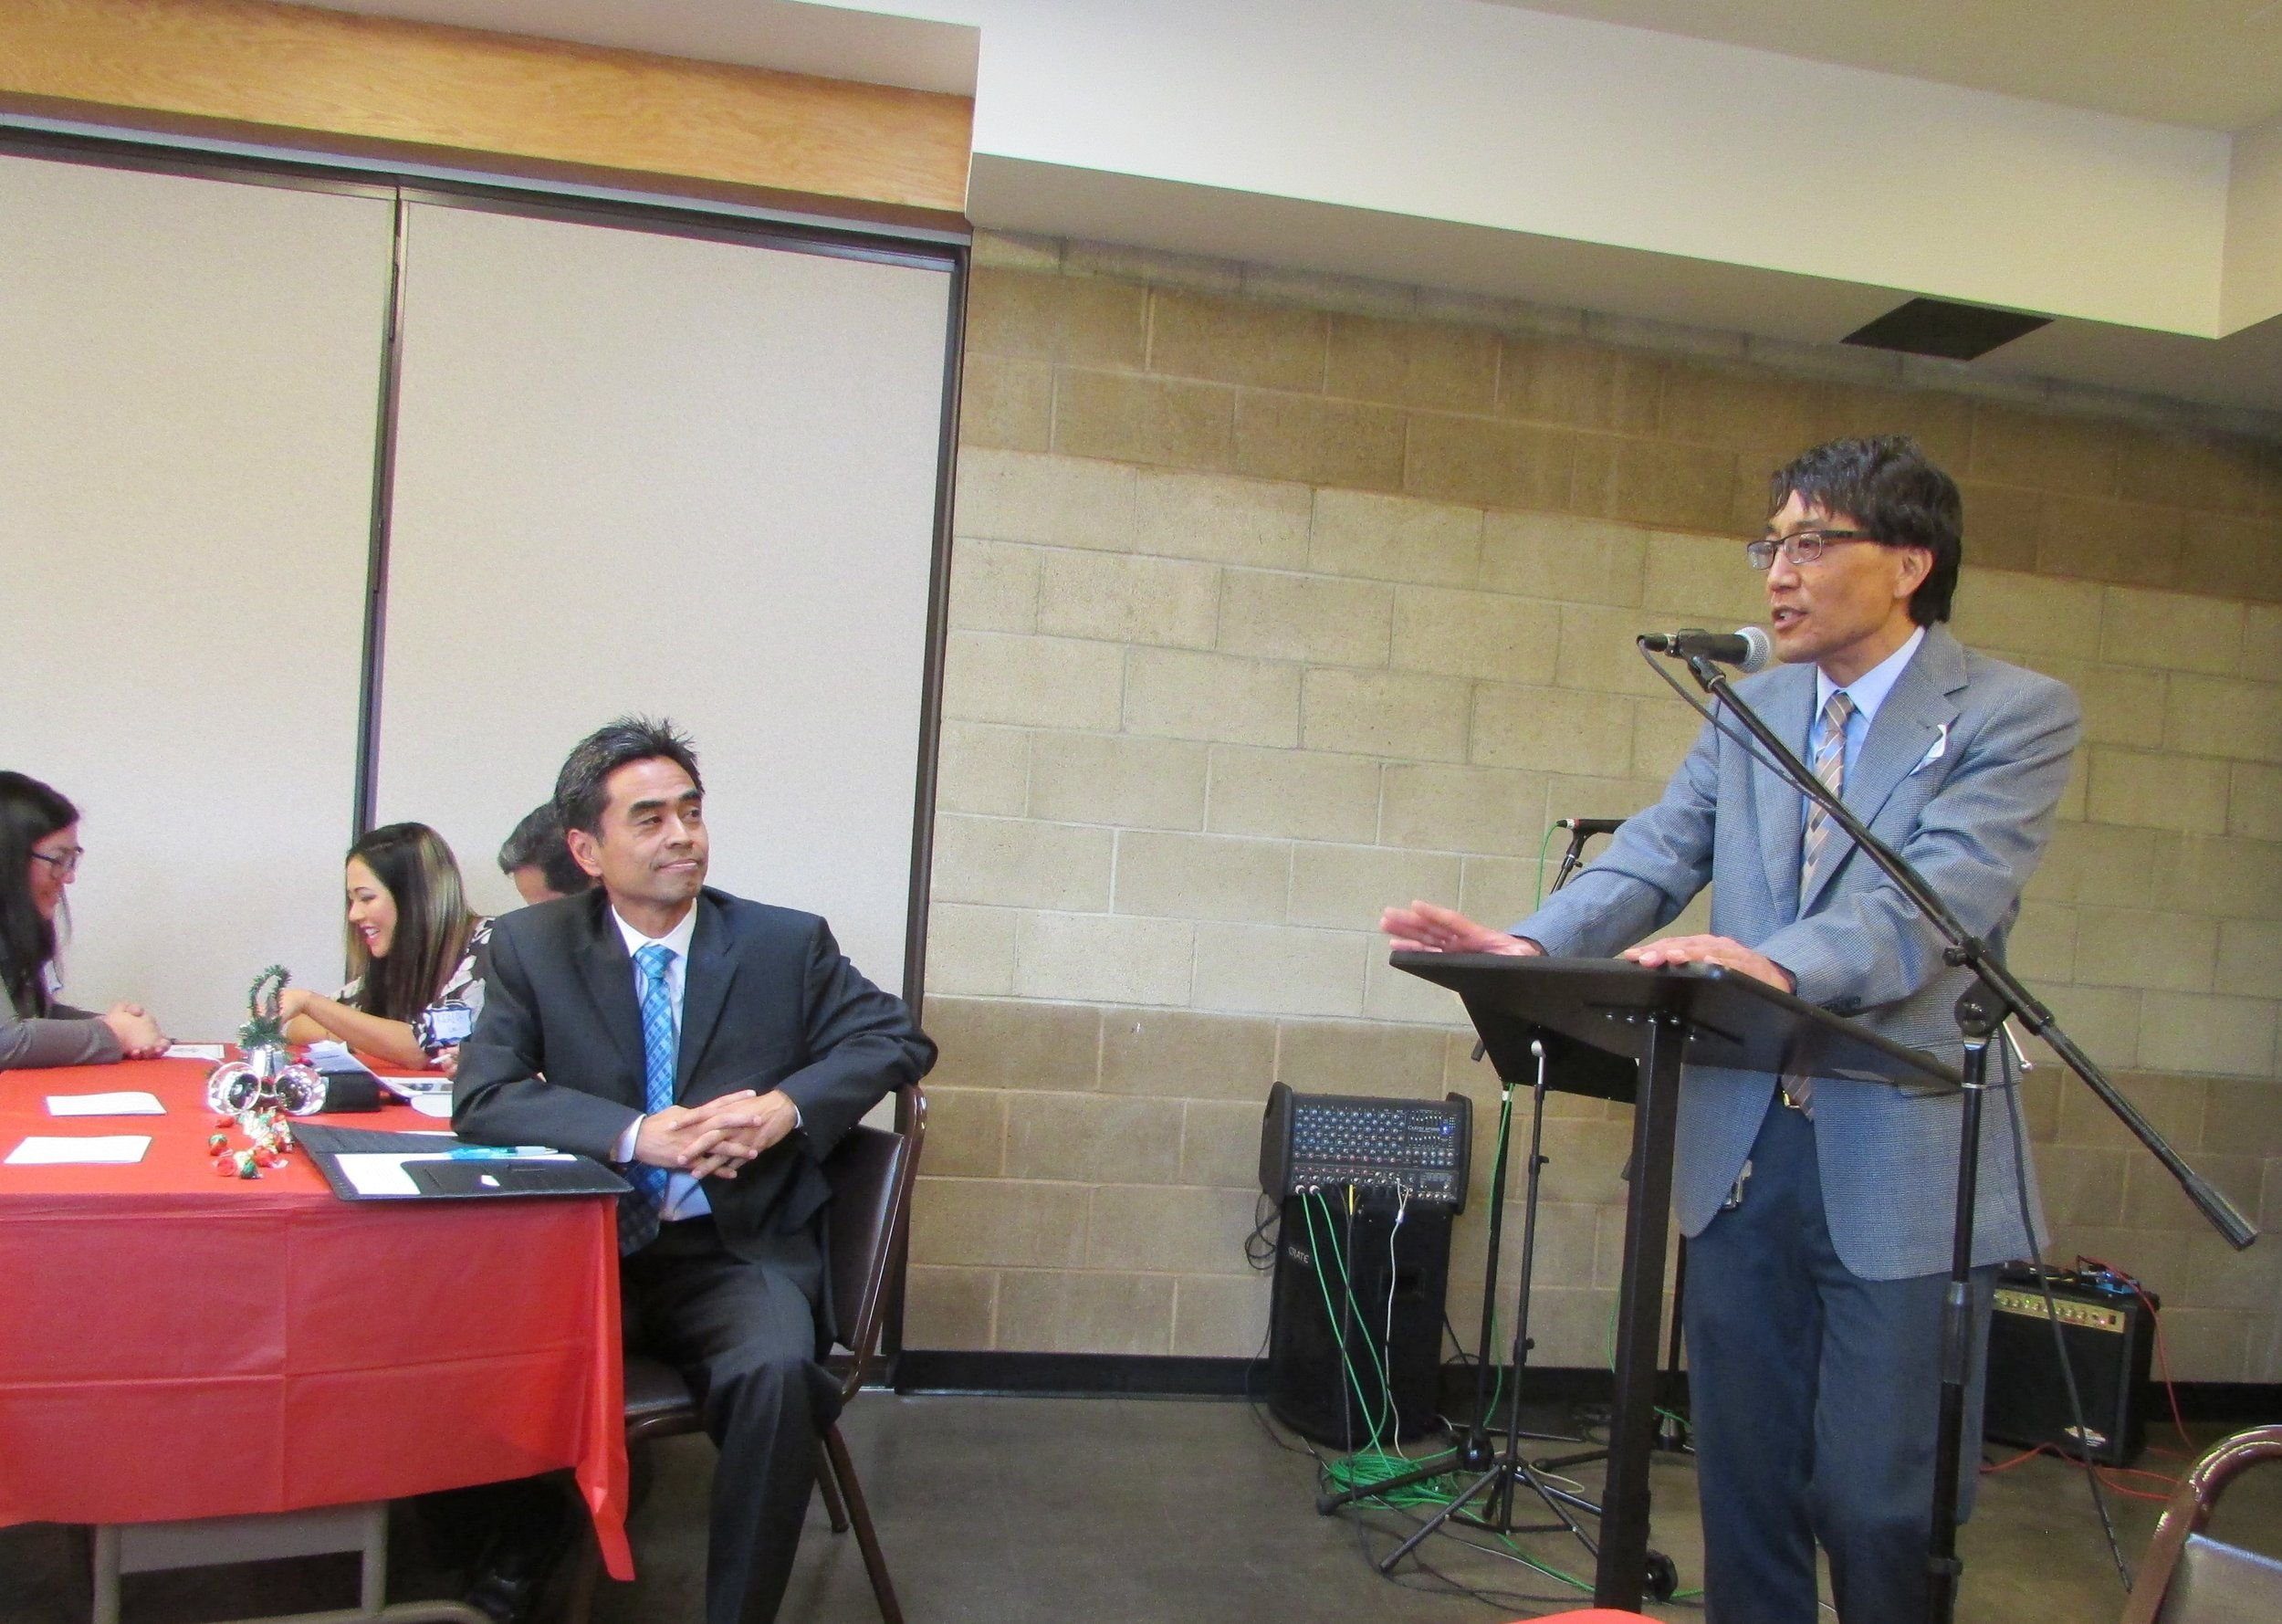 Chapter President John Saito introduces Keynote Speaker, Hon. James Toma, Councilmember, City of West Covina.